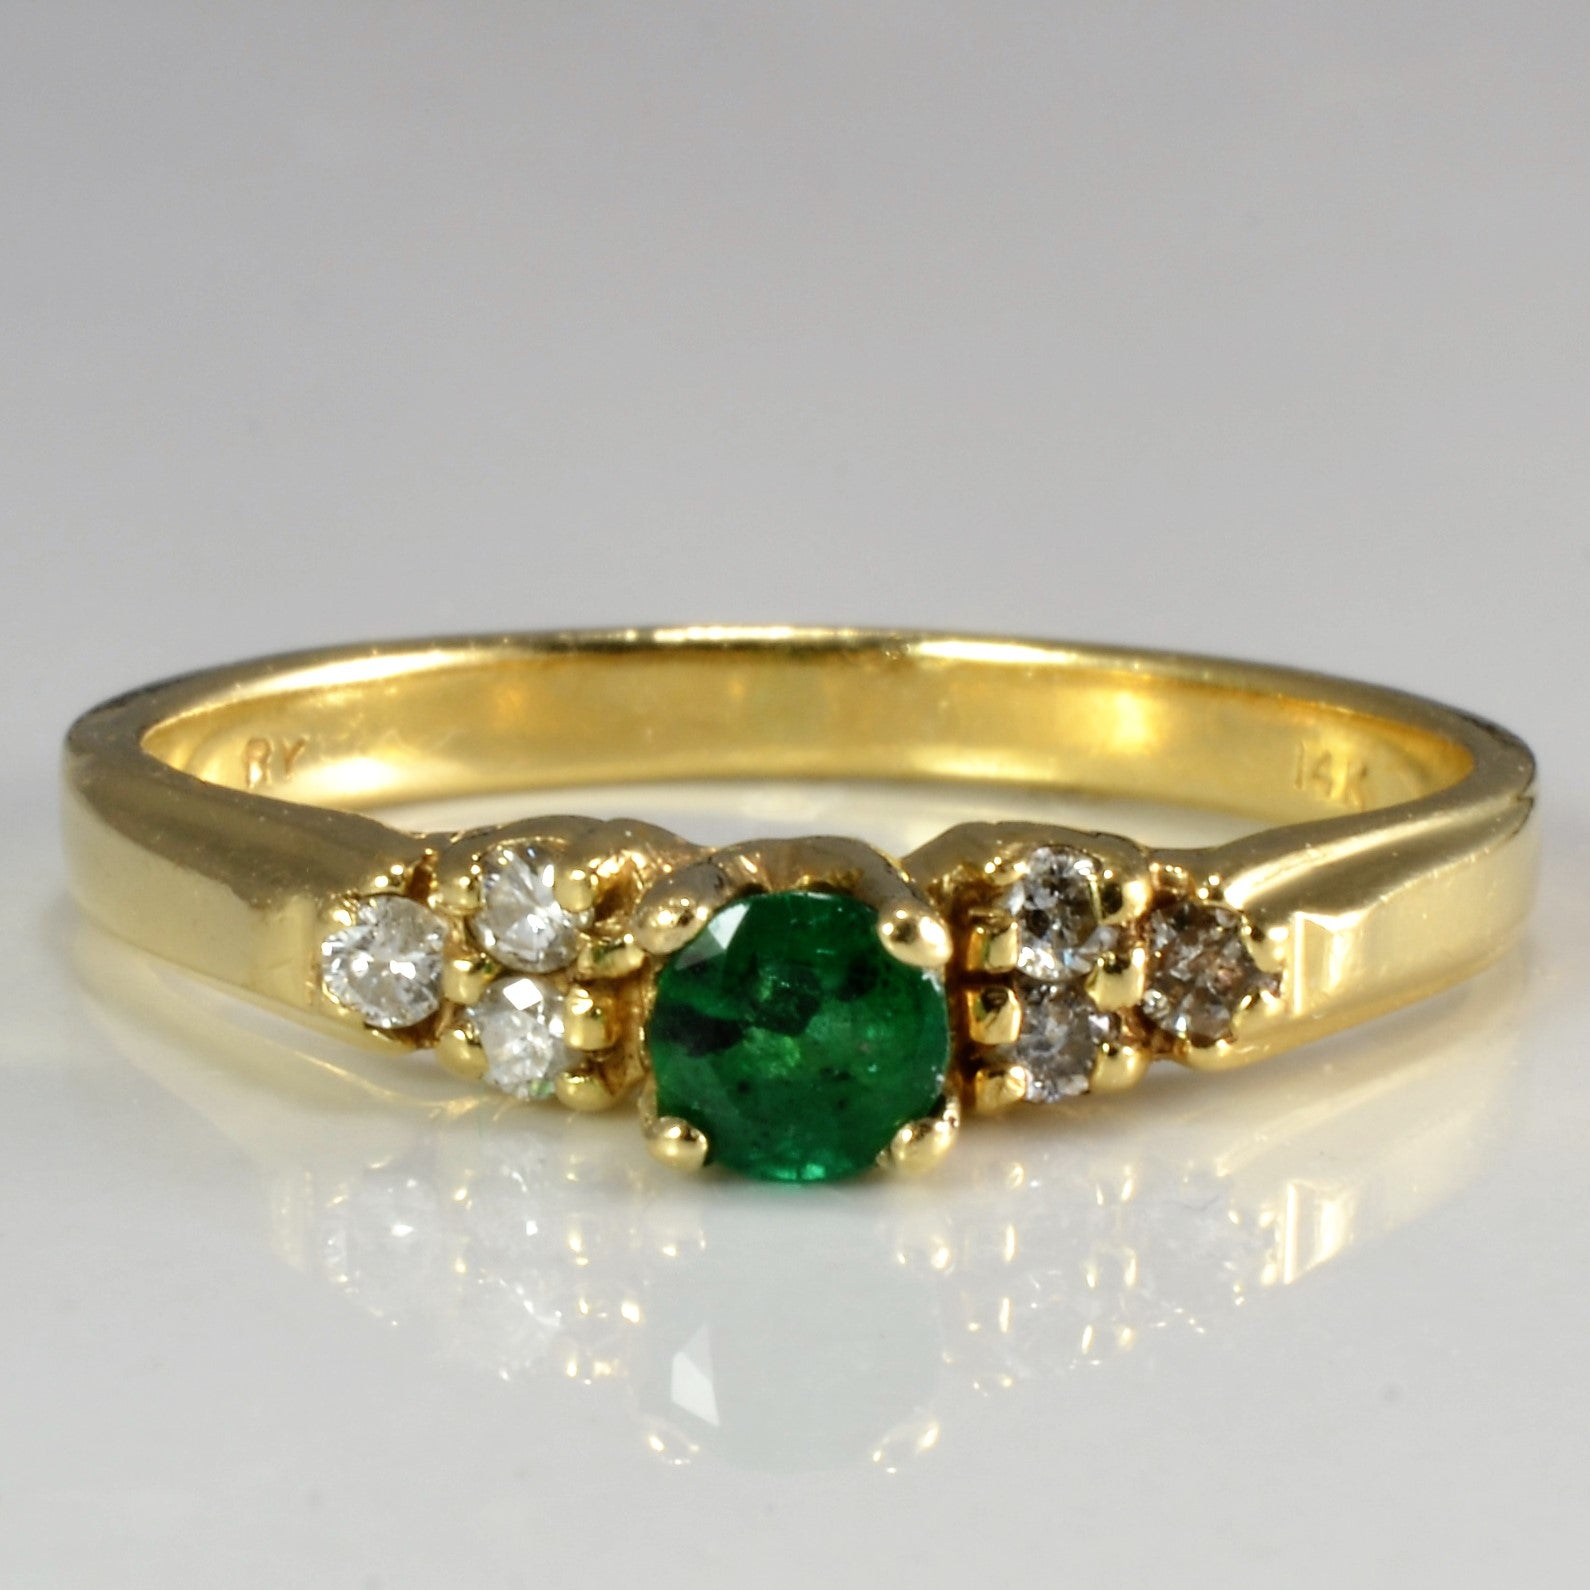 Solitaire Emerald & Accents Diamond Ring | 0.09 ctw, SZ 6.5 |